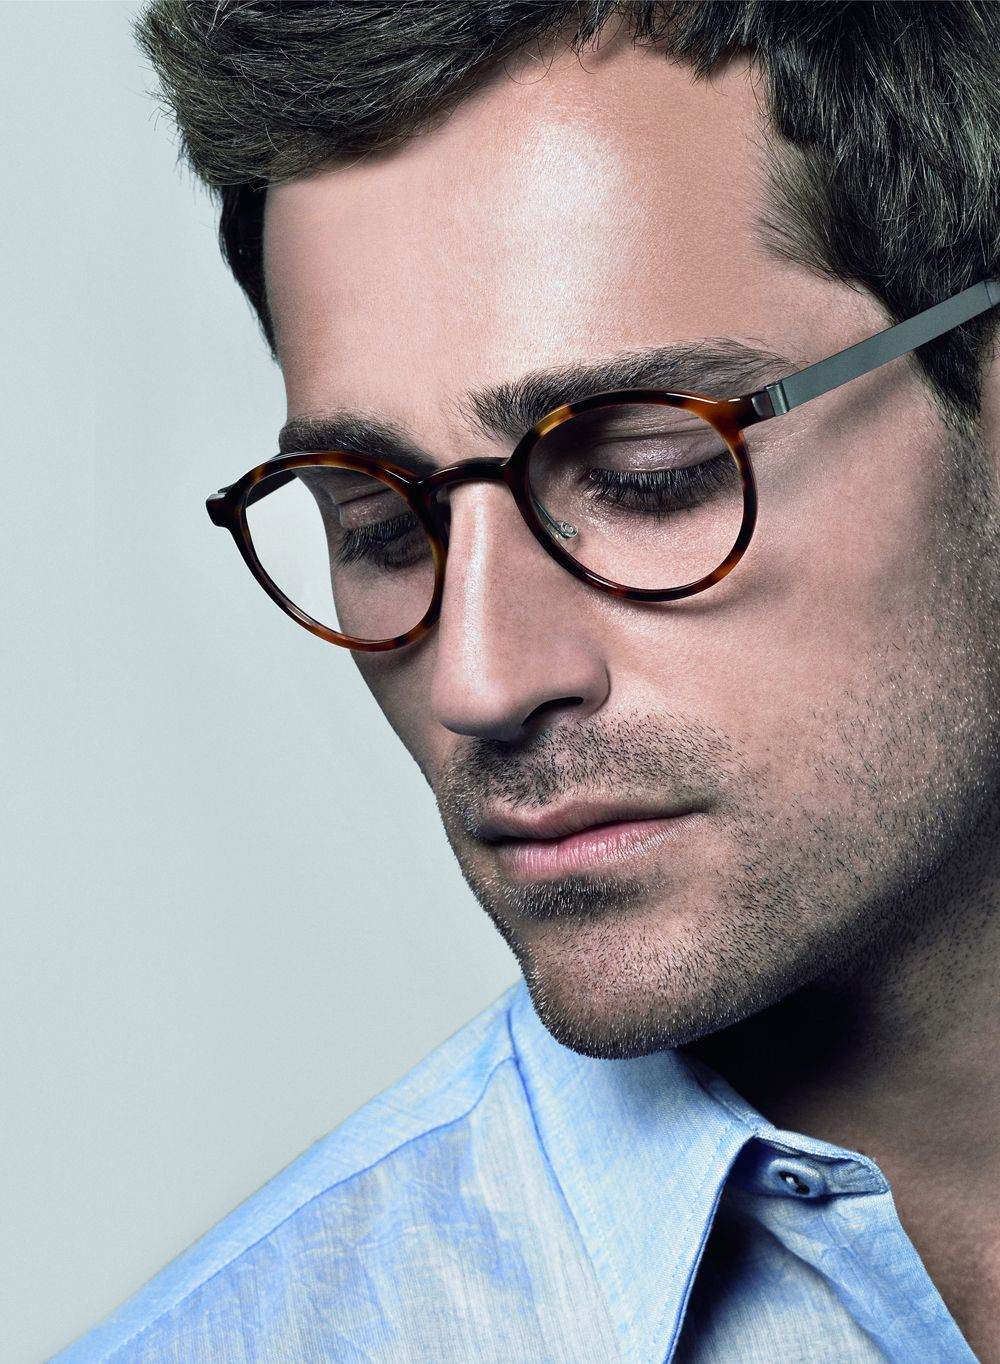 Pin By Contactsandspecs On Specs In 2019 Mens Glasses